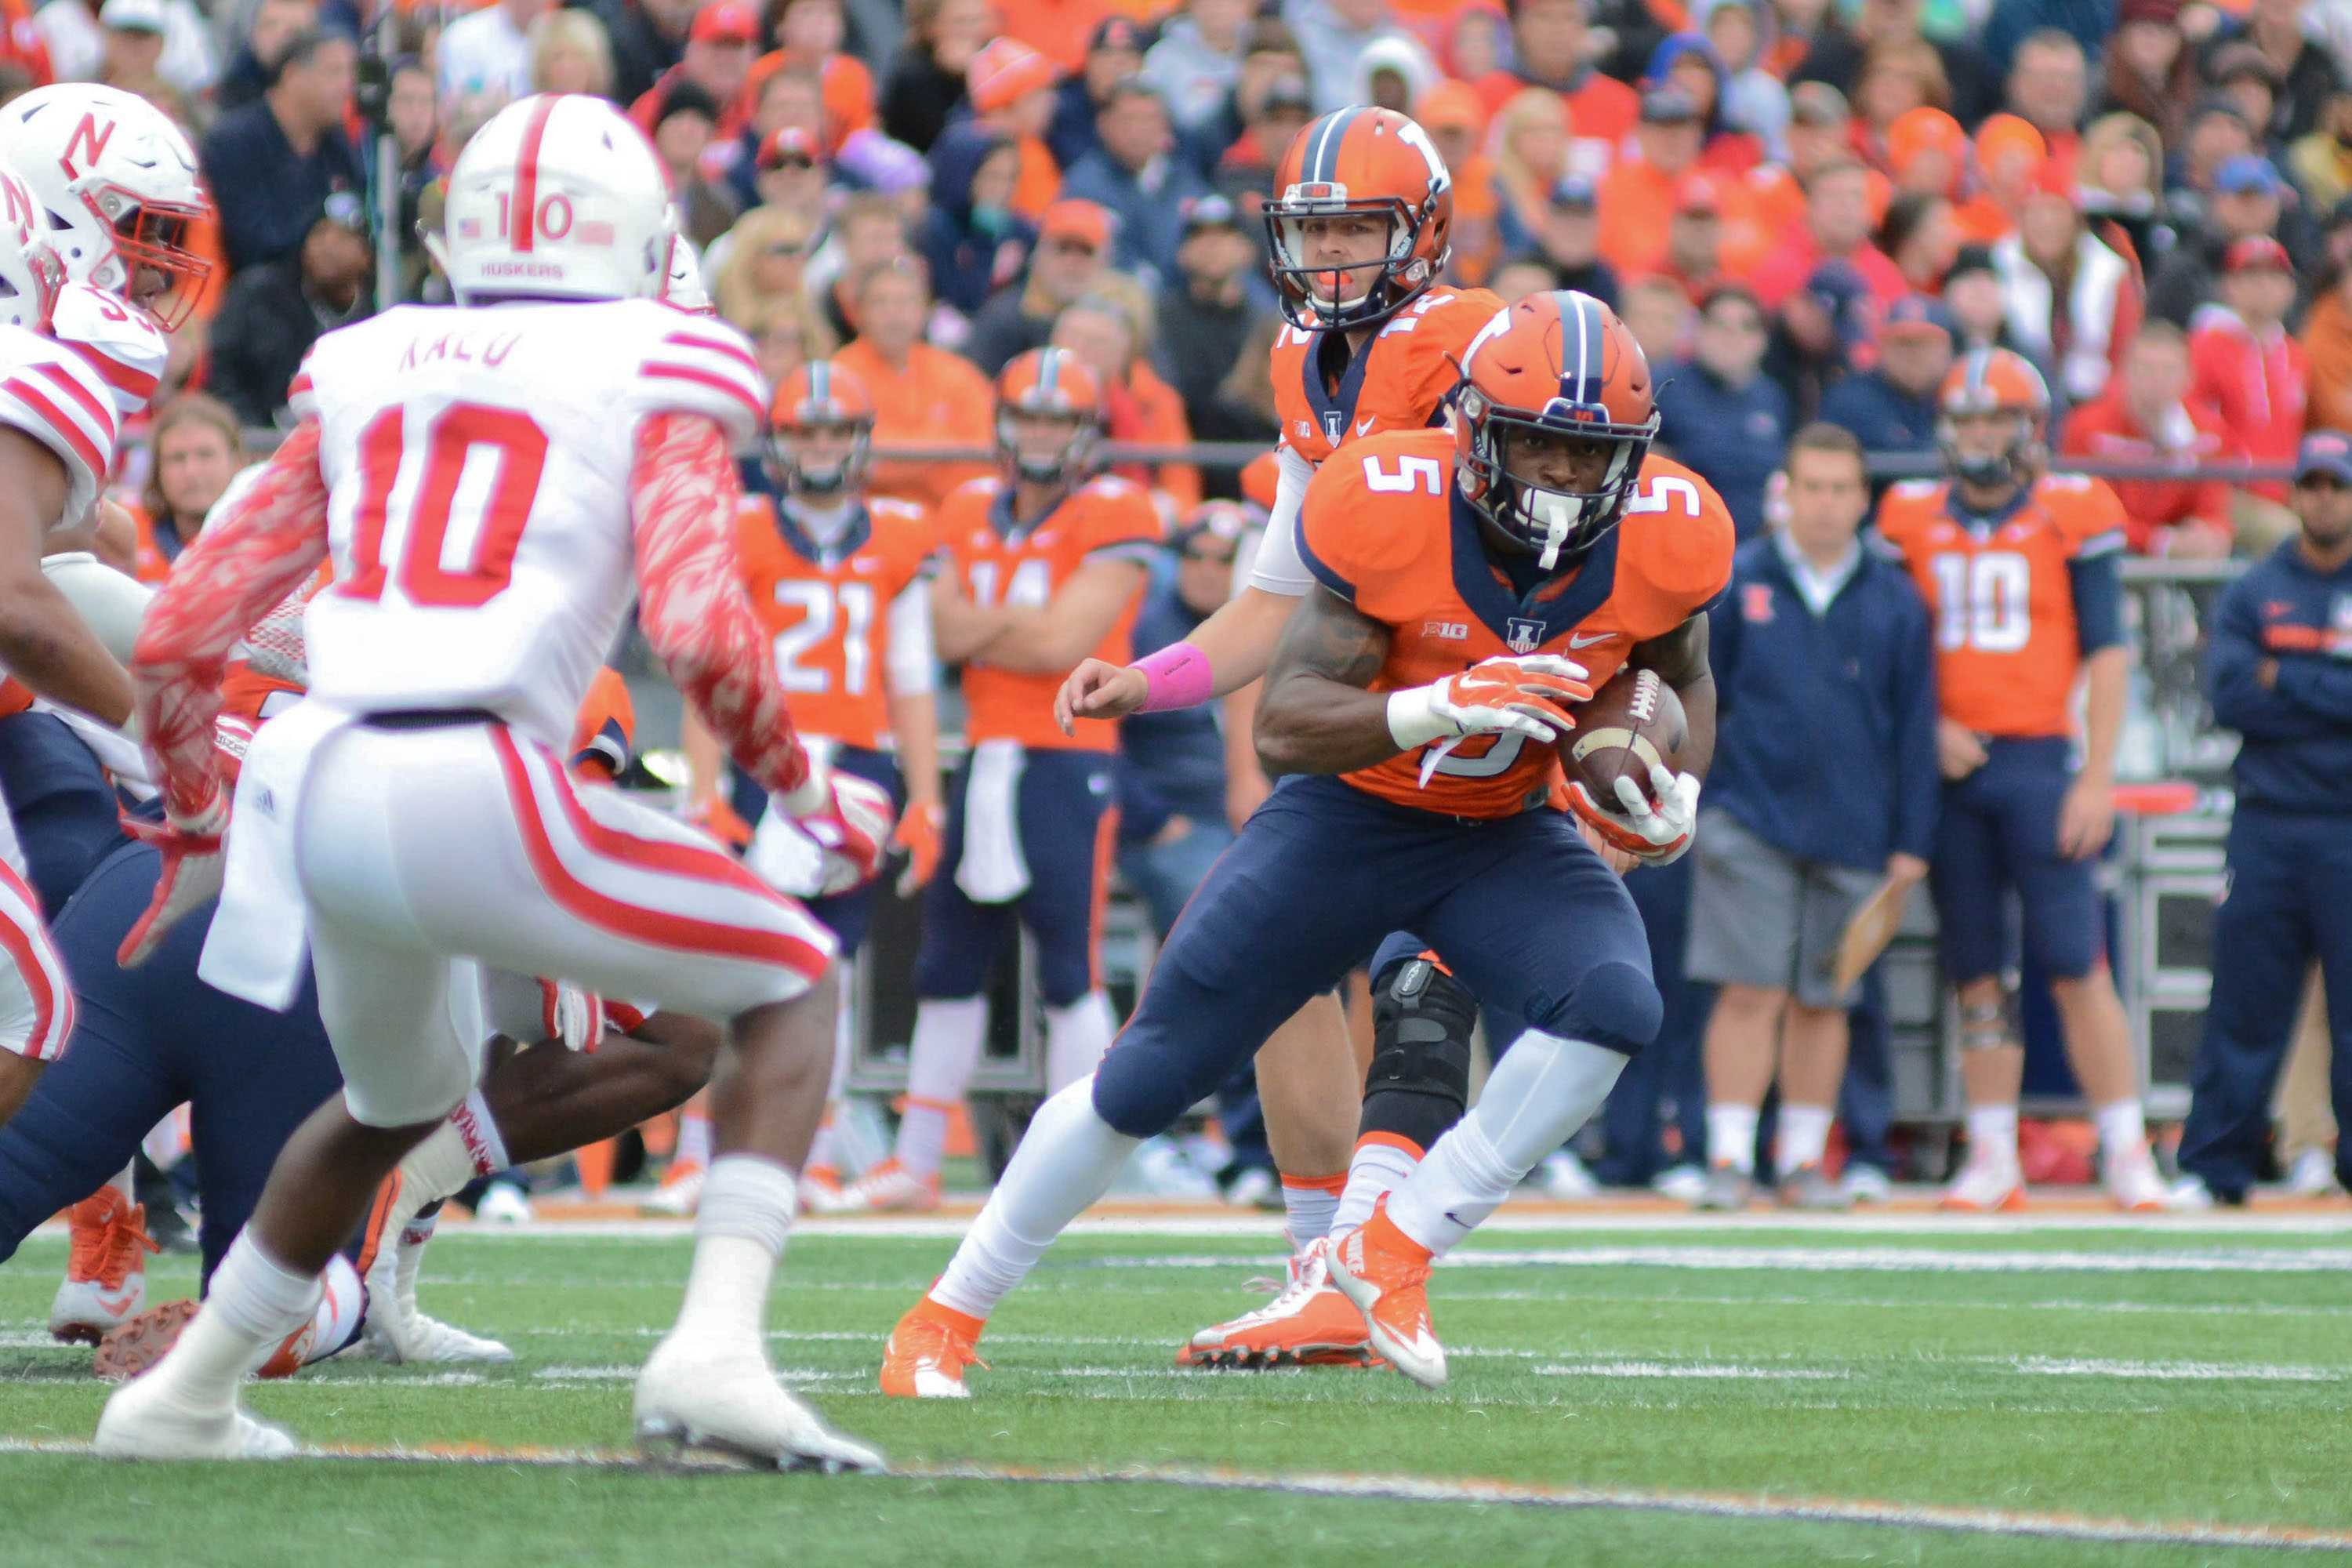 Illinois' Ke'Shawn Vaughn (5) runs with the ball during the game against Nebraska at Memorial Stadium on Saturday, Oct 3, 2015. The Illini won 14-13.